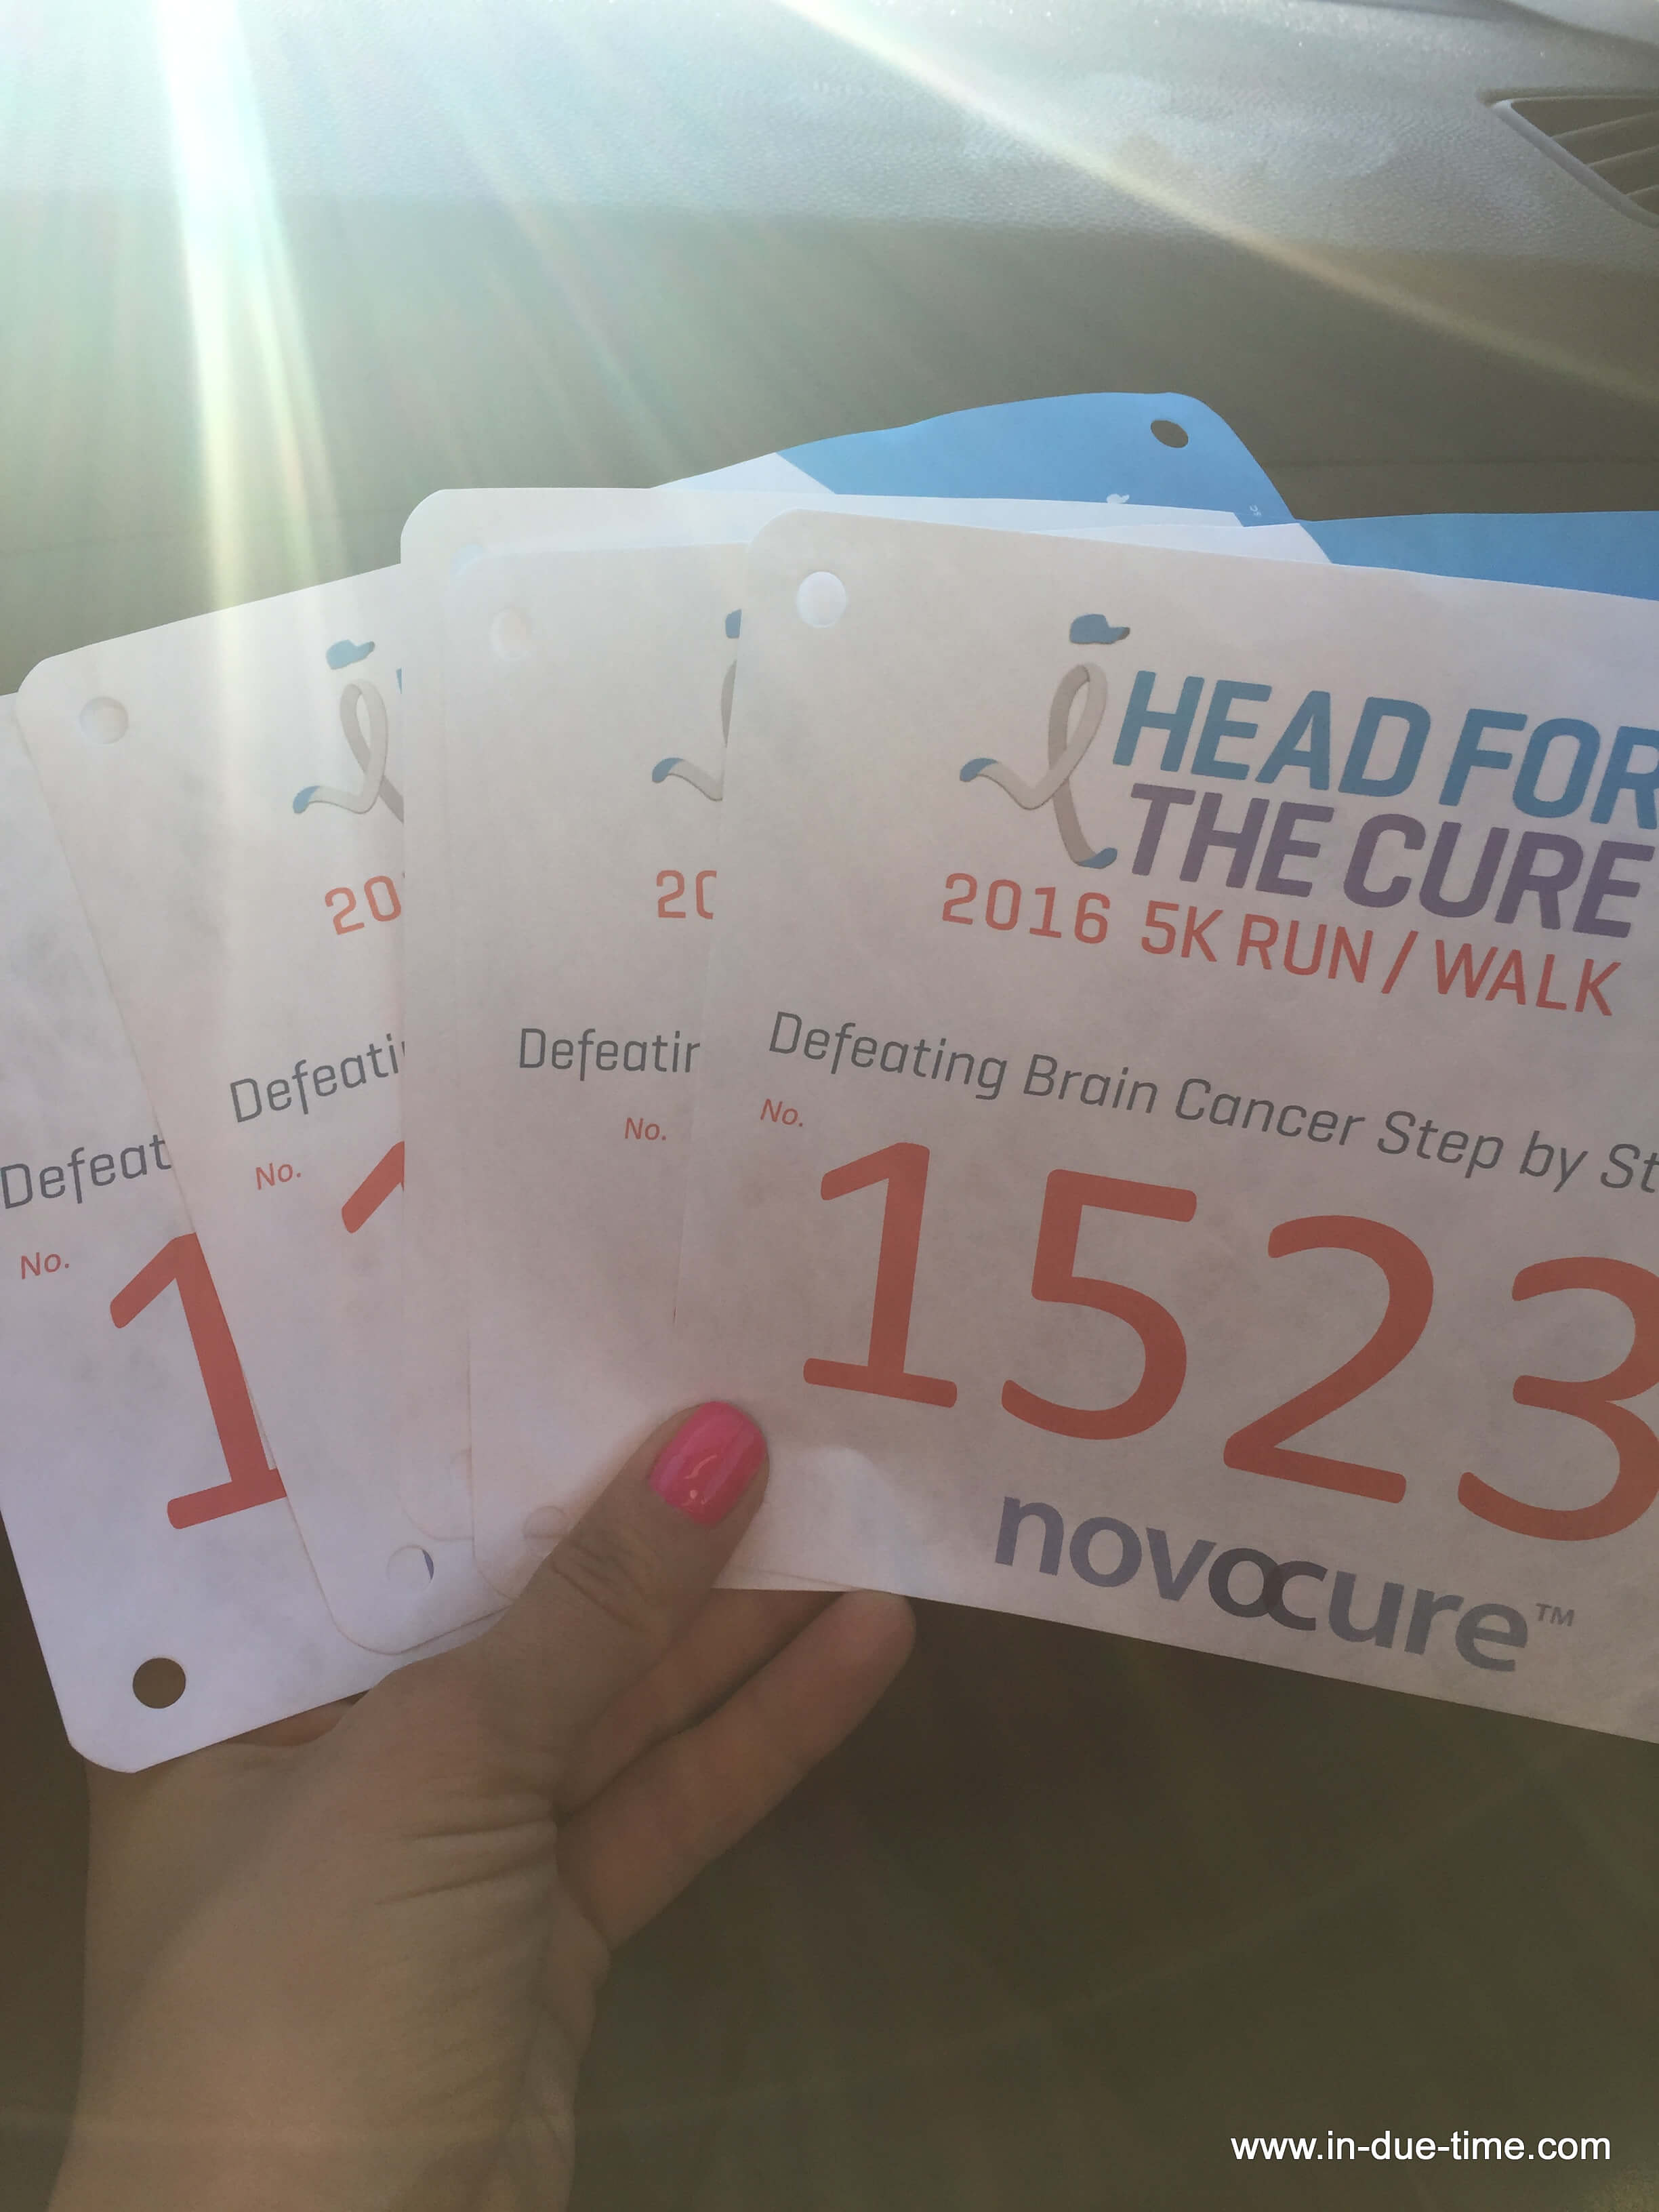 Brain Cancer + Head For The Cure